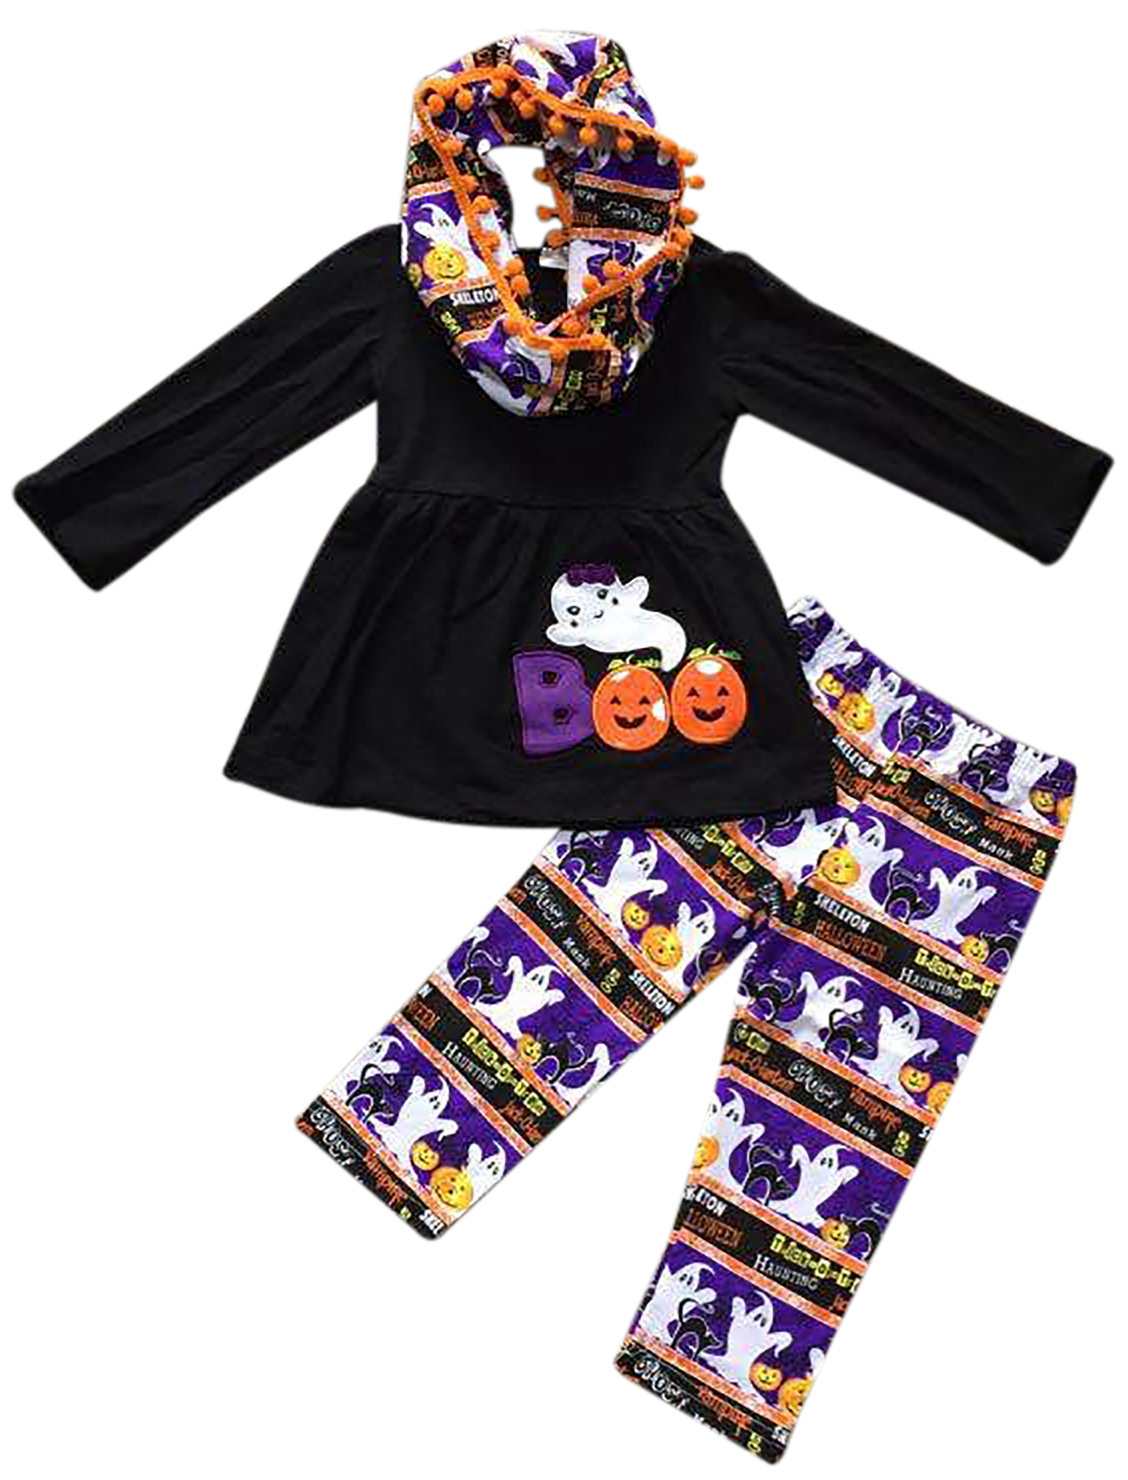 Toddler Girls 3 Pieces Set BOO Ghost Halloween Pumpkin Outfit Top Scarf Pant Set Black 2T XS (P318337P)